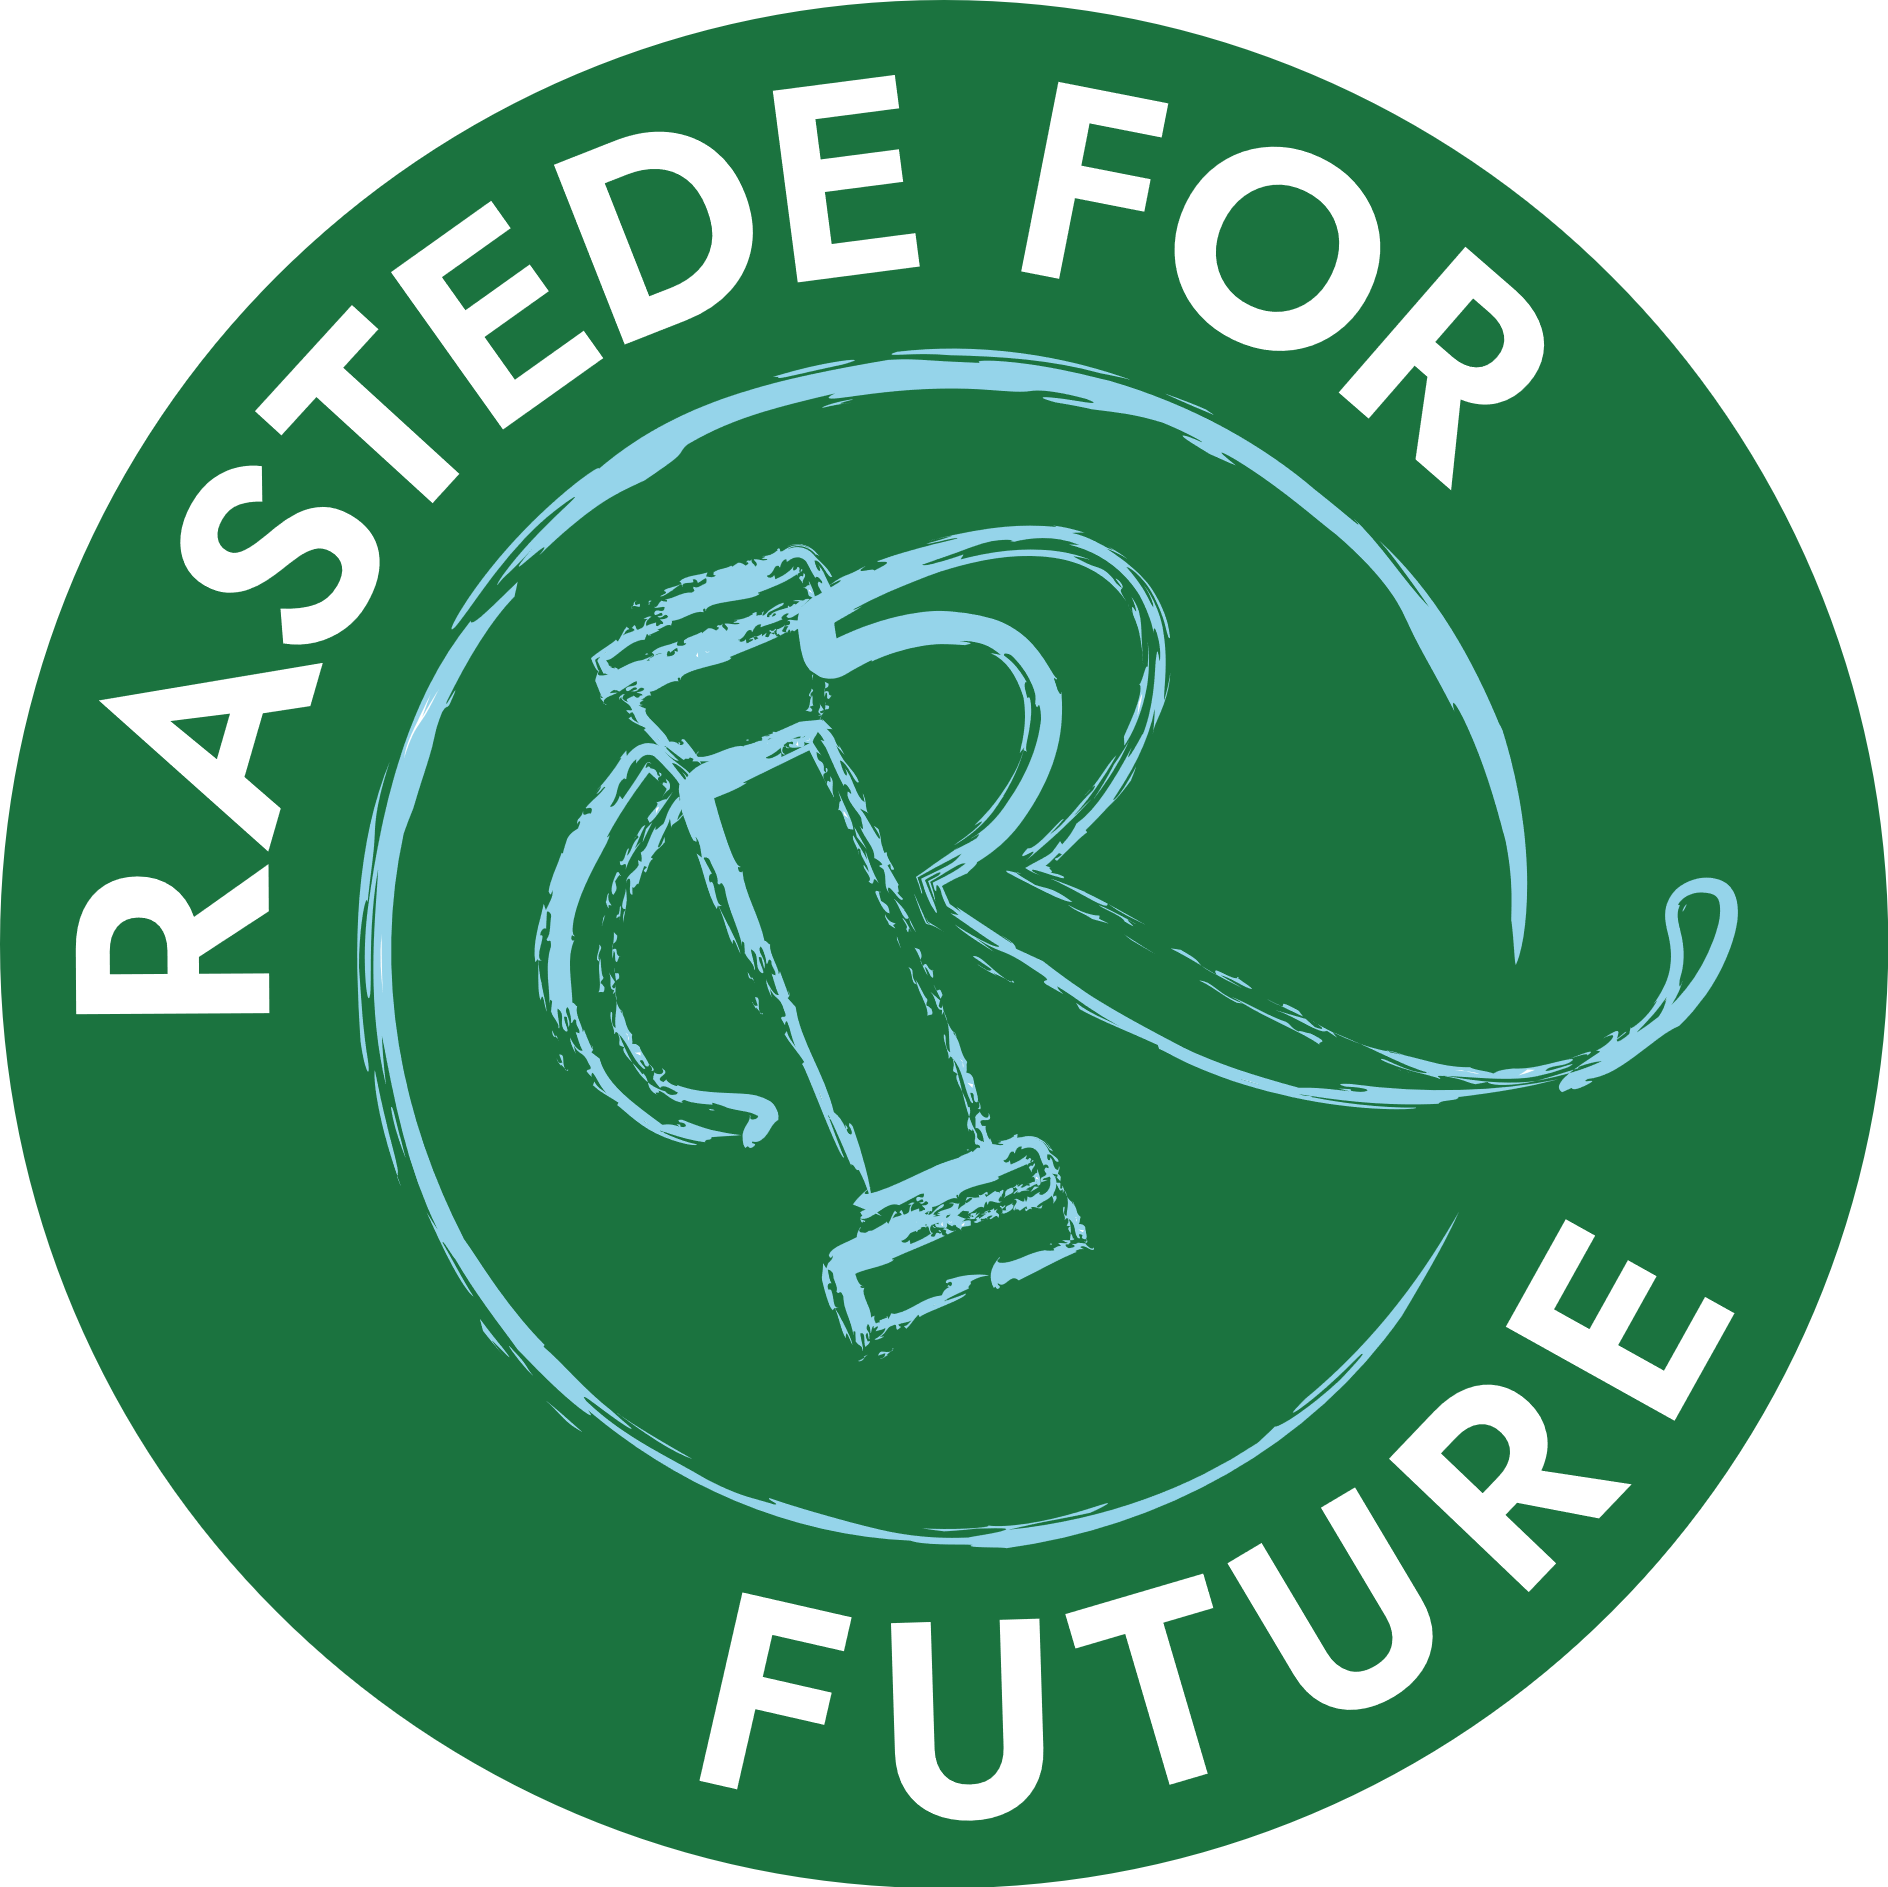 Logo Rastede for Futuure